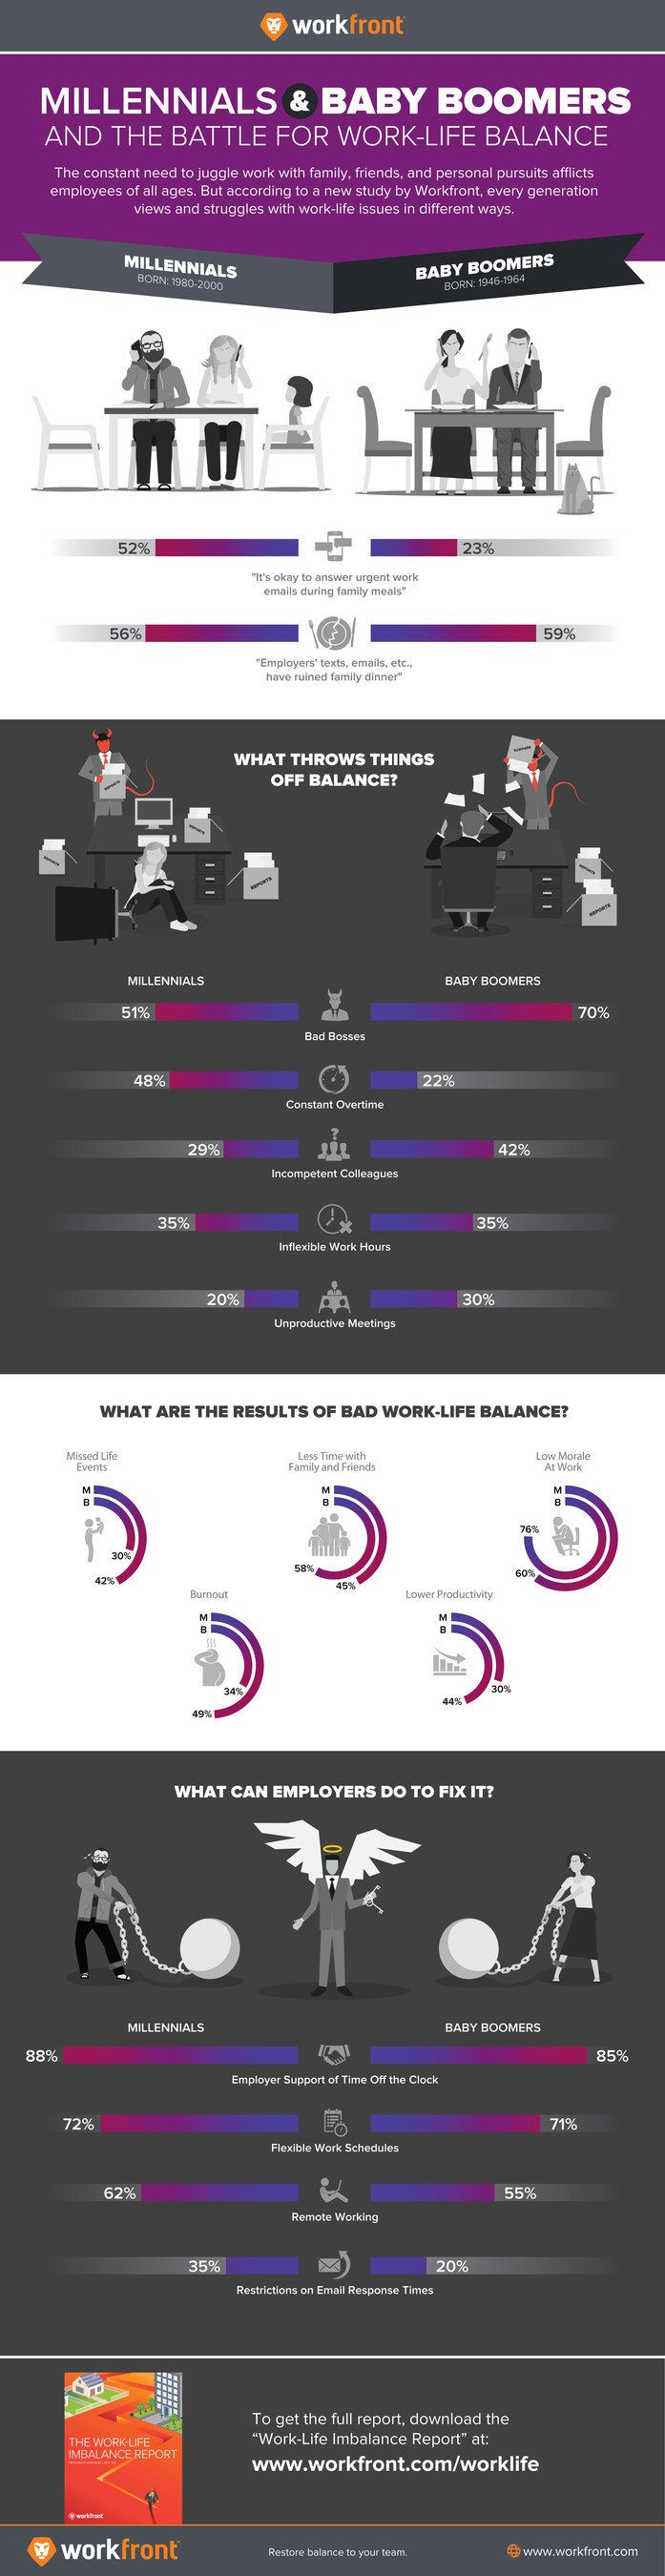 Workfront Survey Uncovers the Generational Differences in Perception of Work-Life Balance